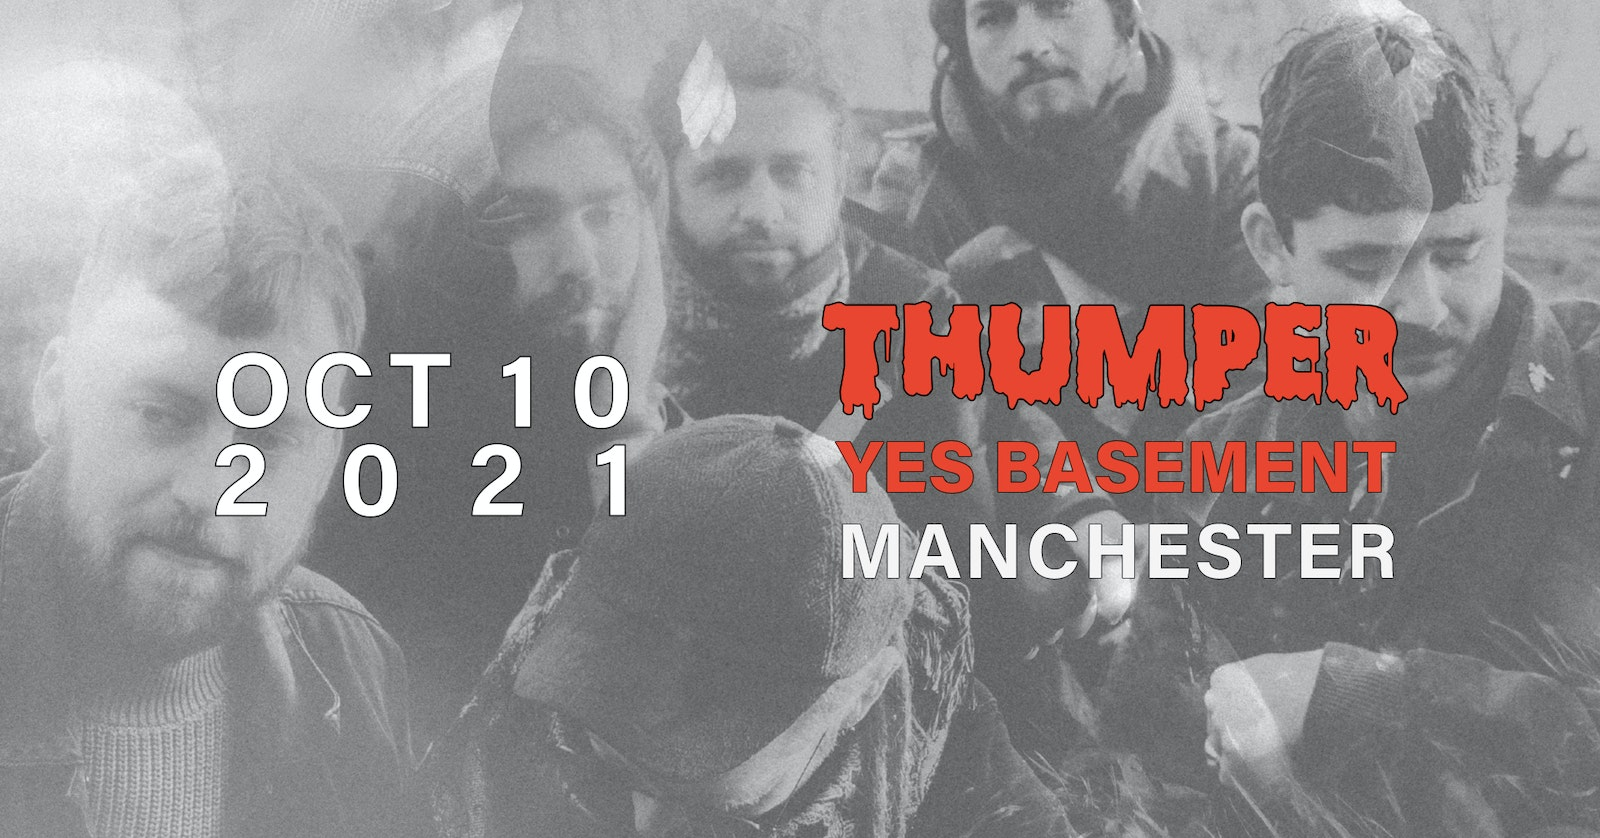 Thumper | Manchester, YES (The Basement)